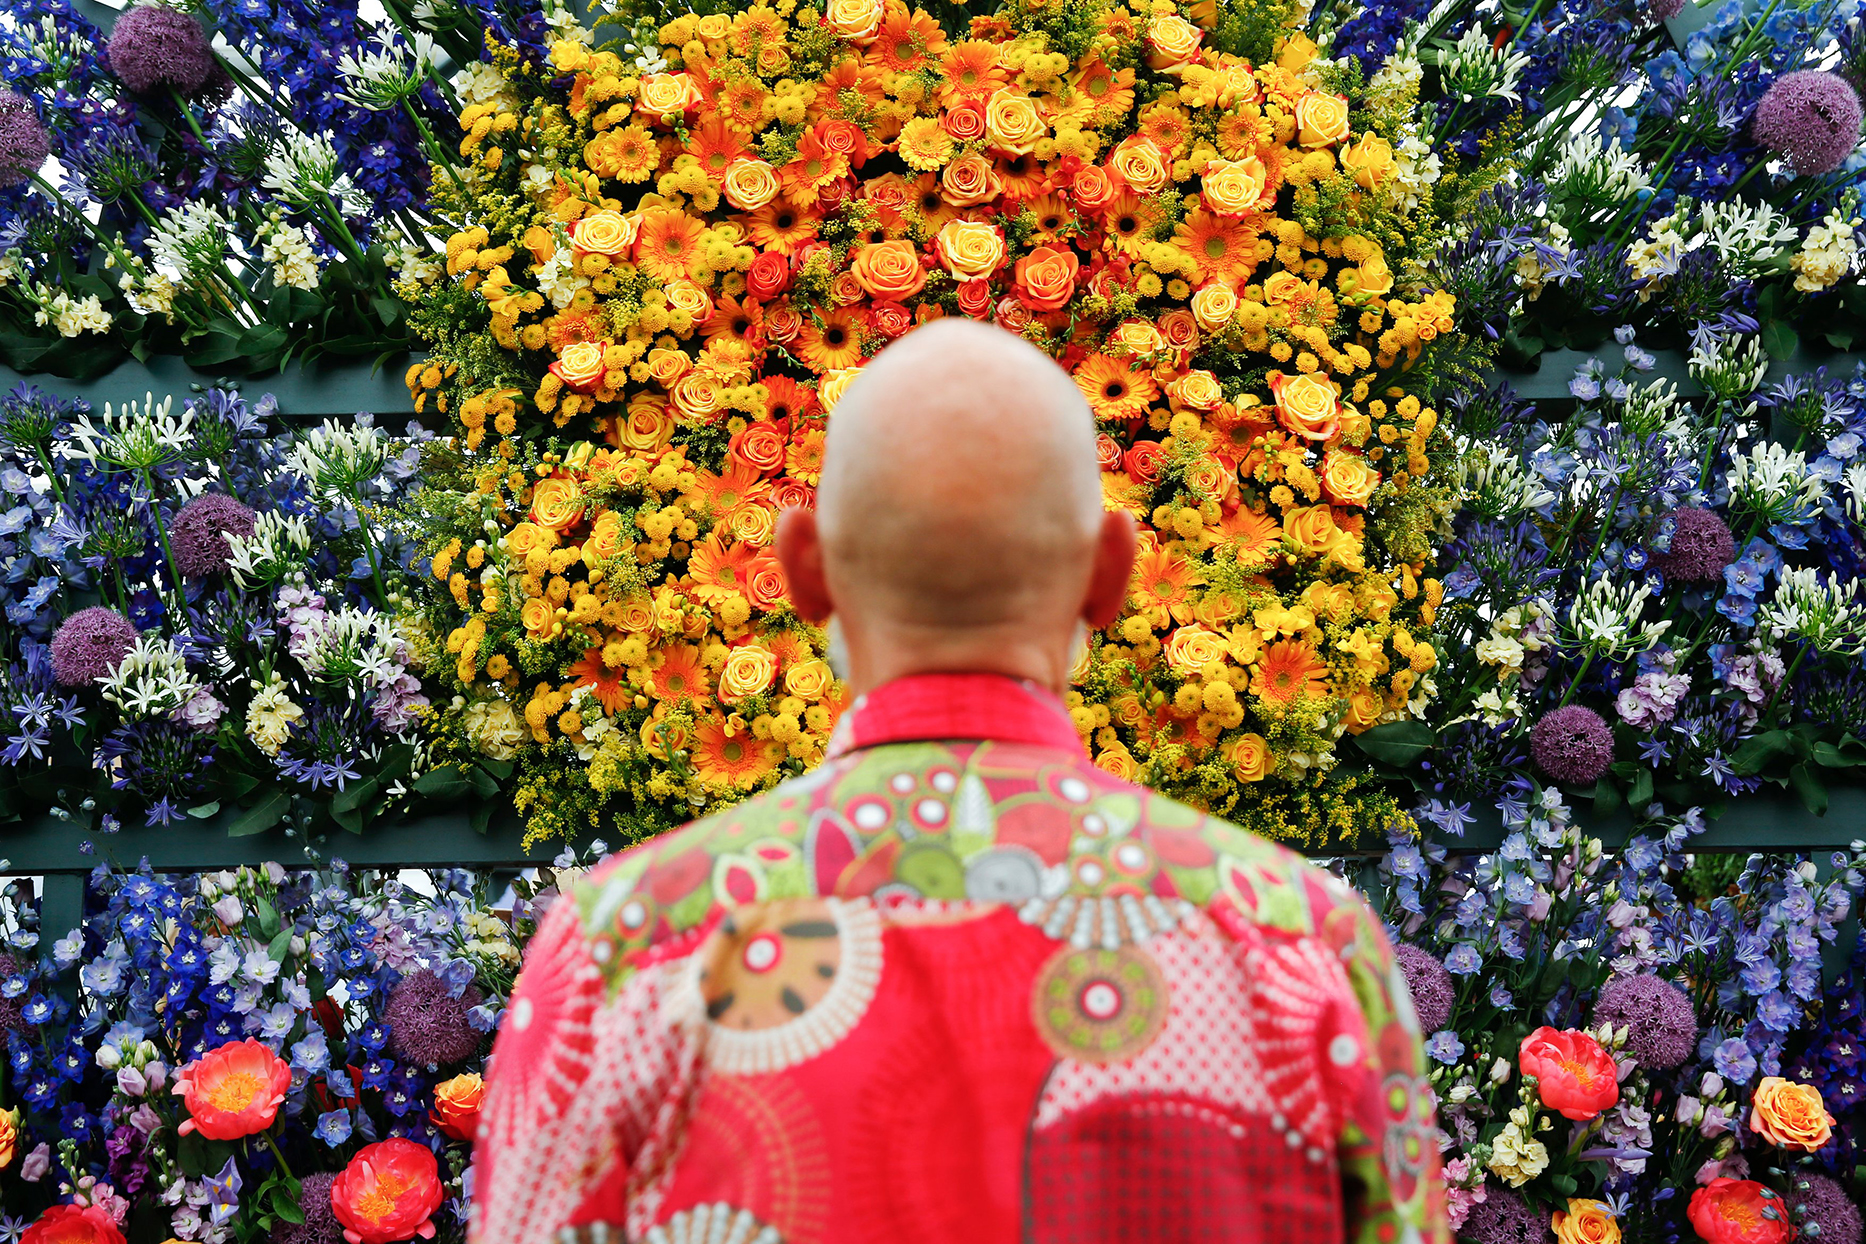 Designer John Sallis Chandler standing in front of his floral display at the Chelsea Garden Show